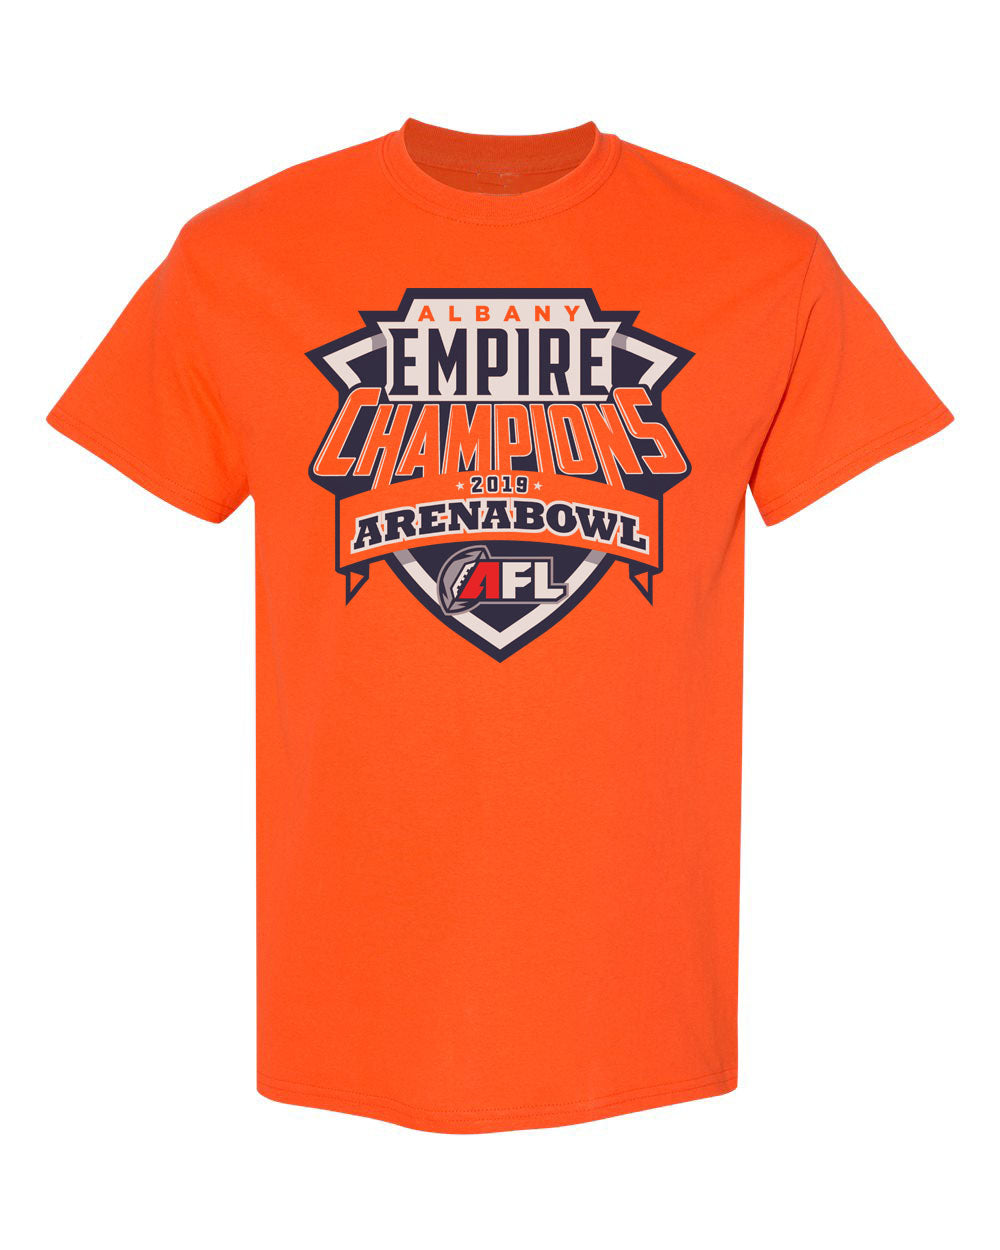 AFL Arena Bowl 2019 Champions Tee Albany Empire